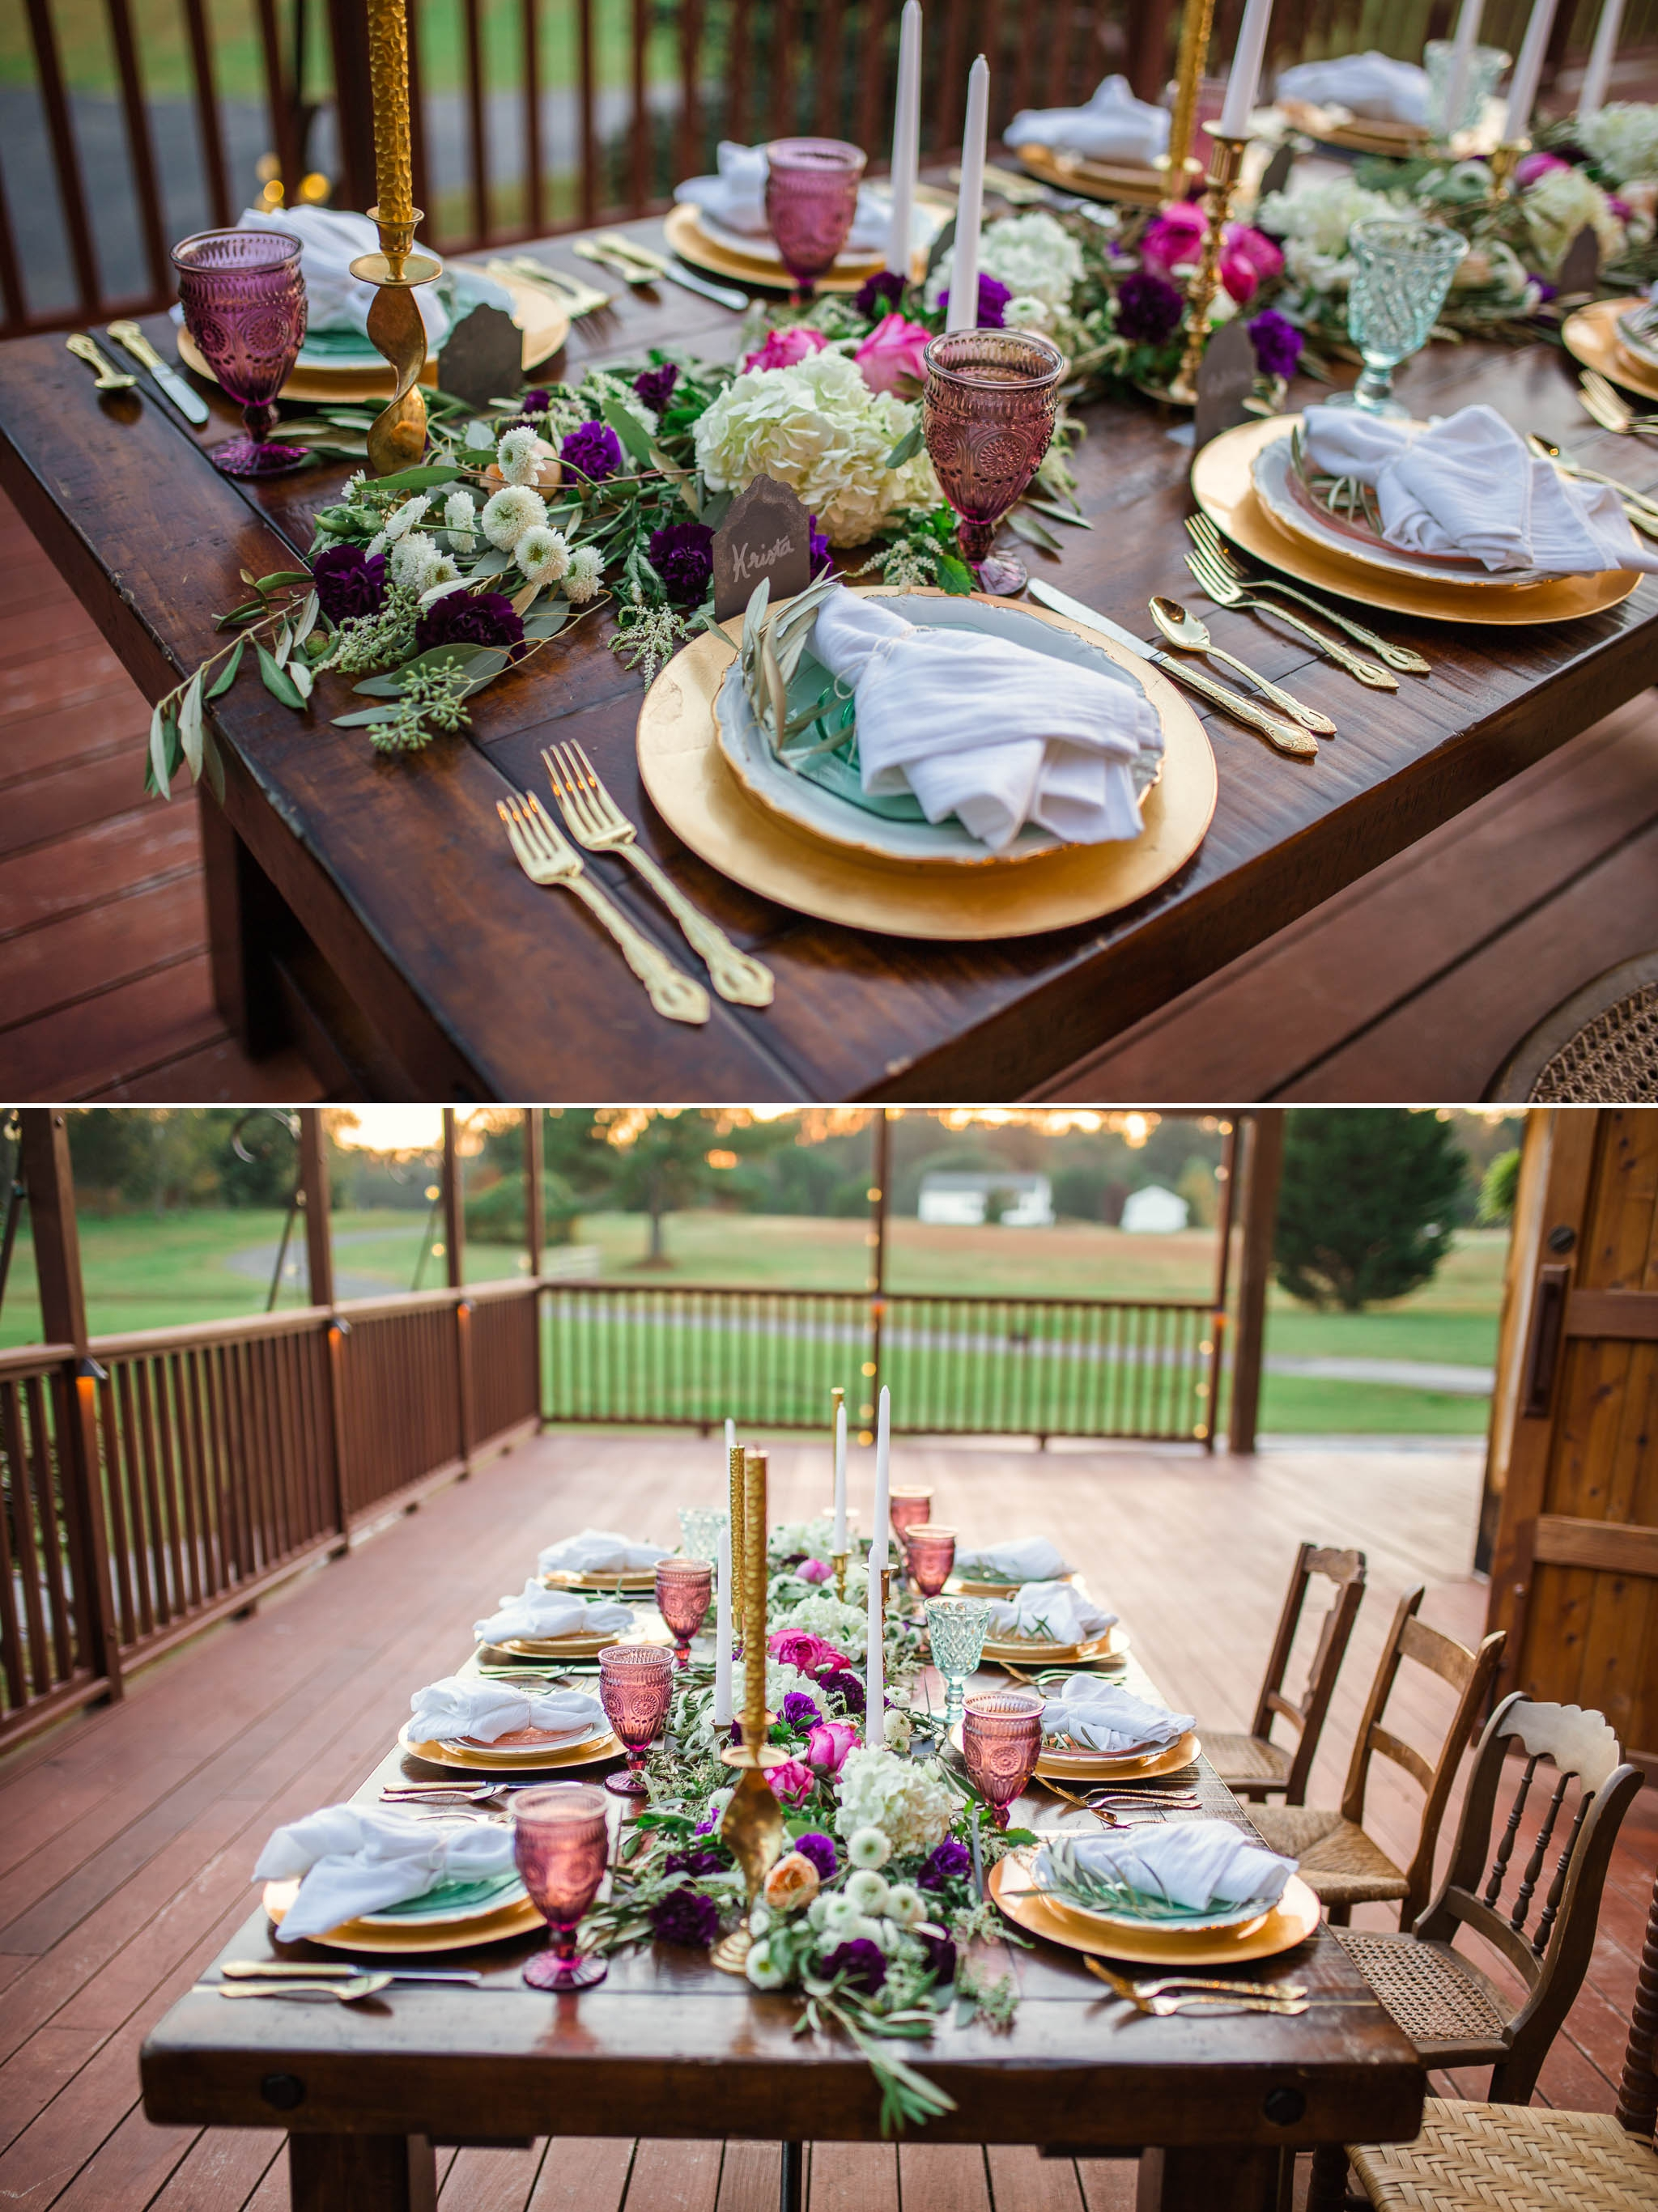 Wedding Table scape details inspiration - the barn at valhalla in chapel hill, nc - raleigh, north carolina photographer